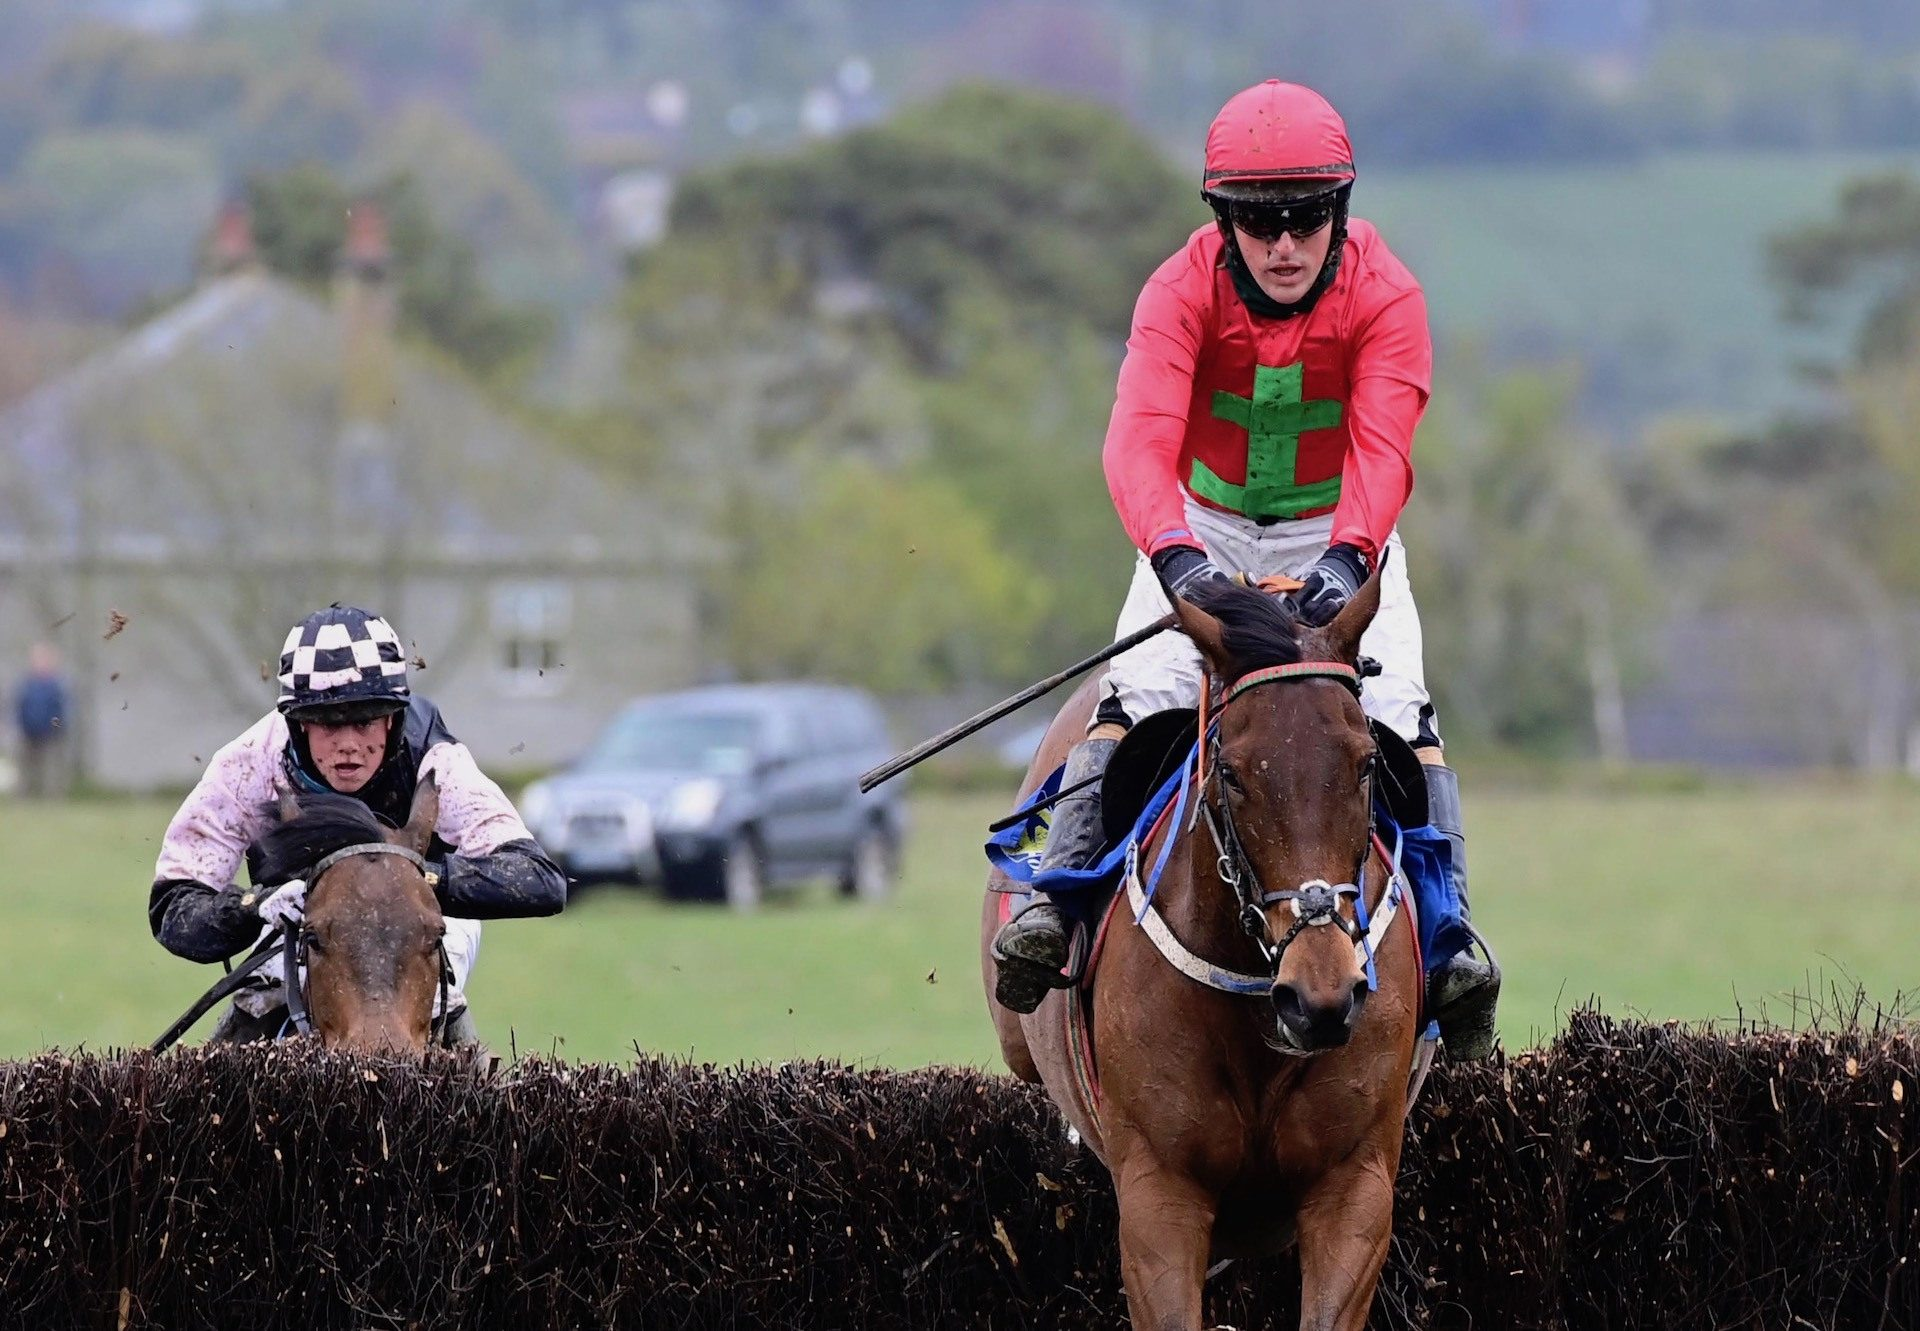 Copper Nation (Westerner) Wins The Four Year Old Mares Maiden At Dromahane